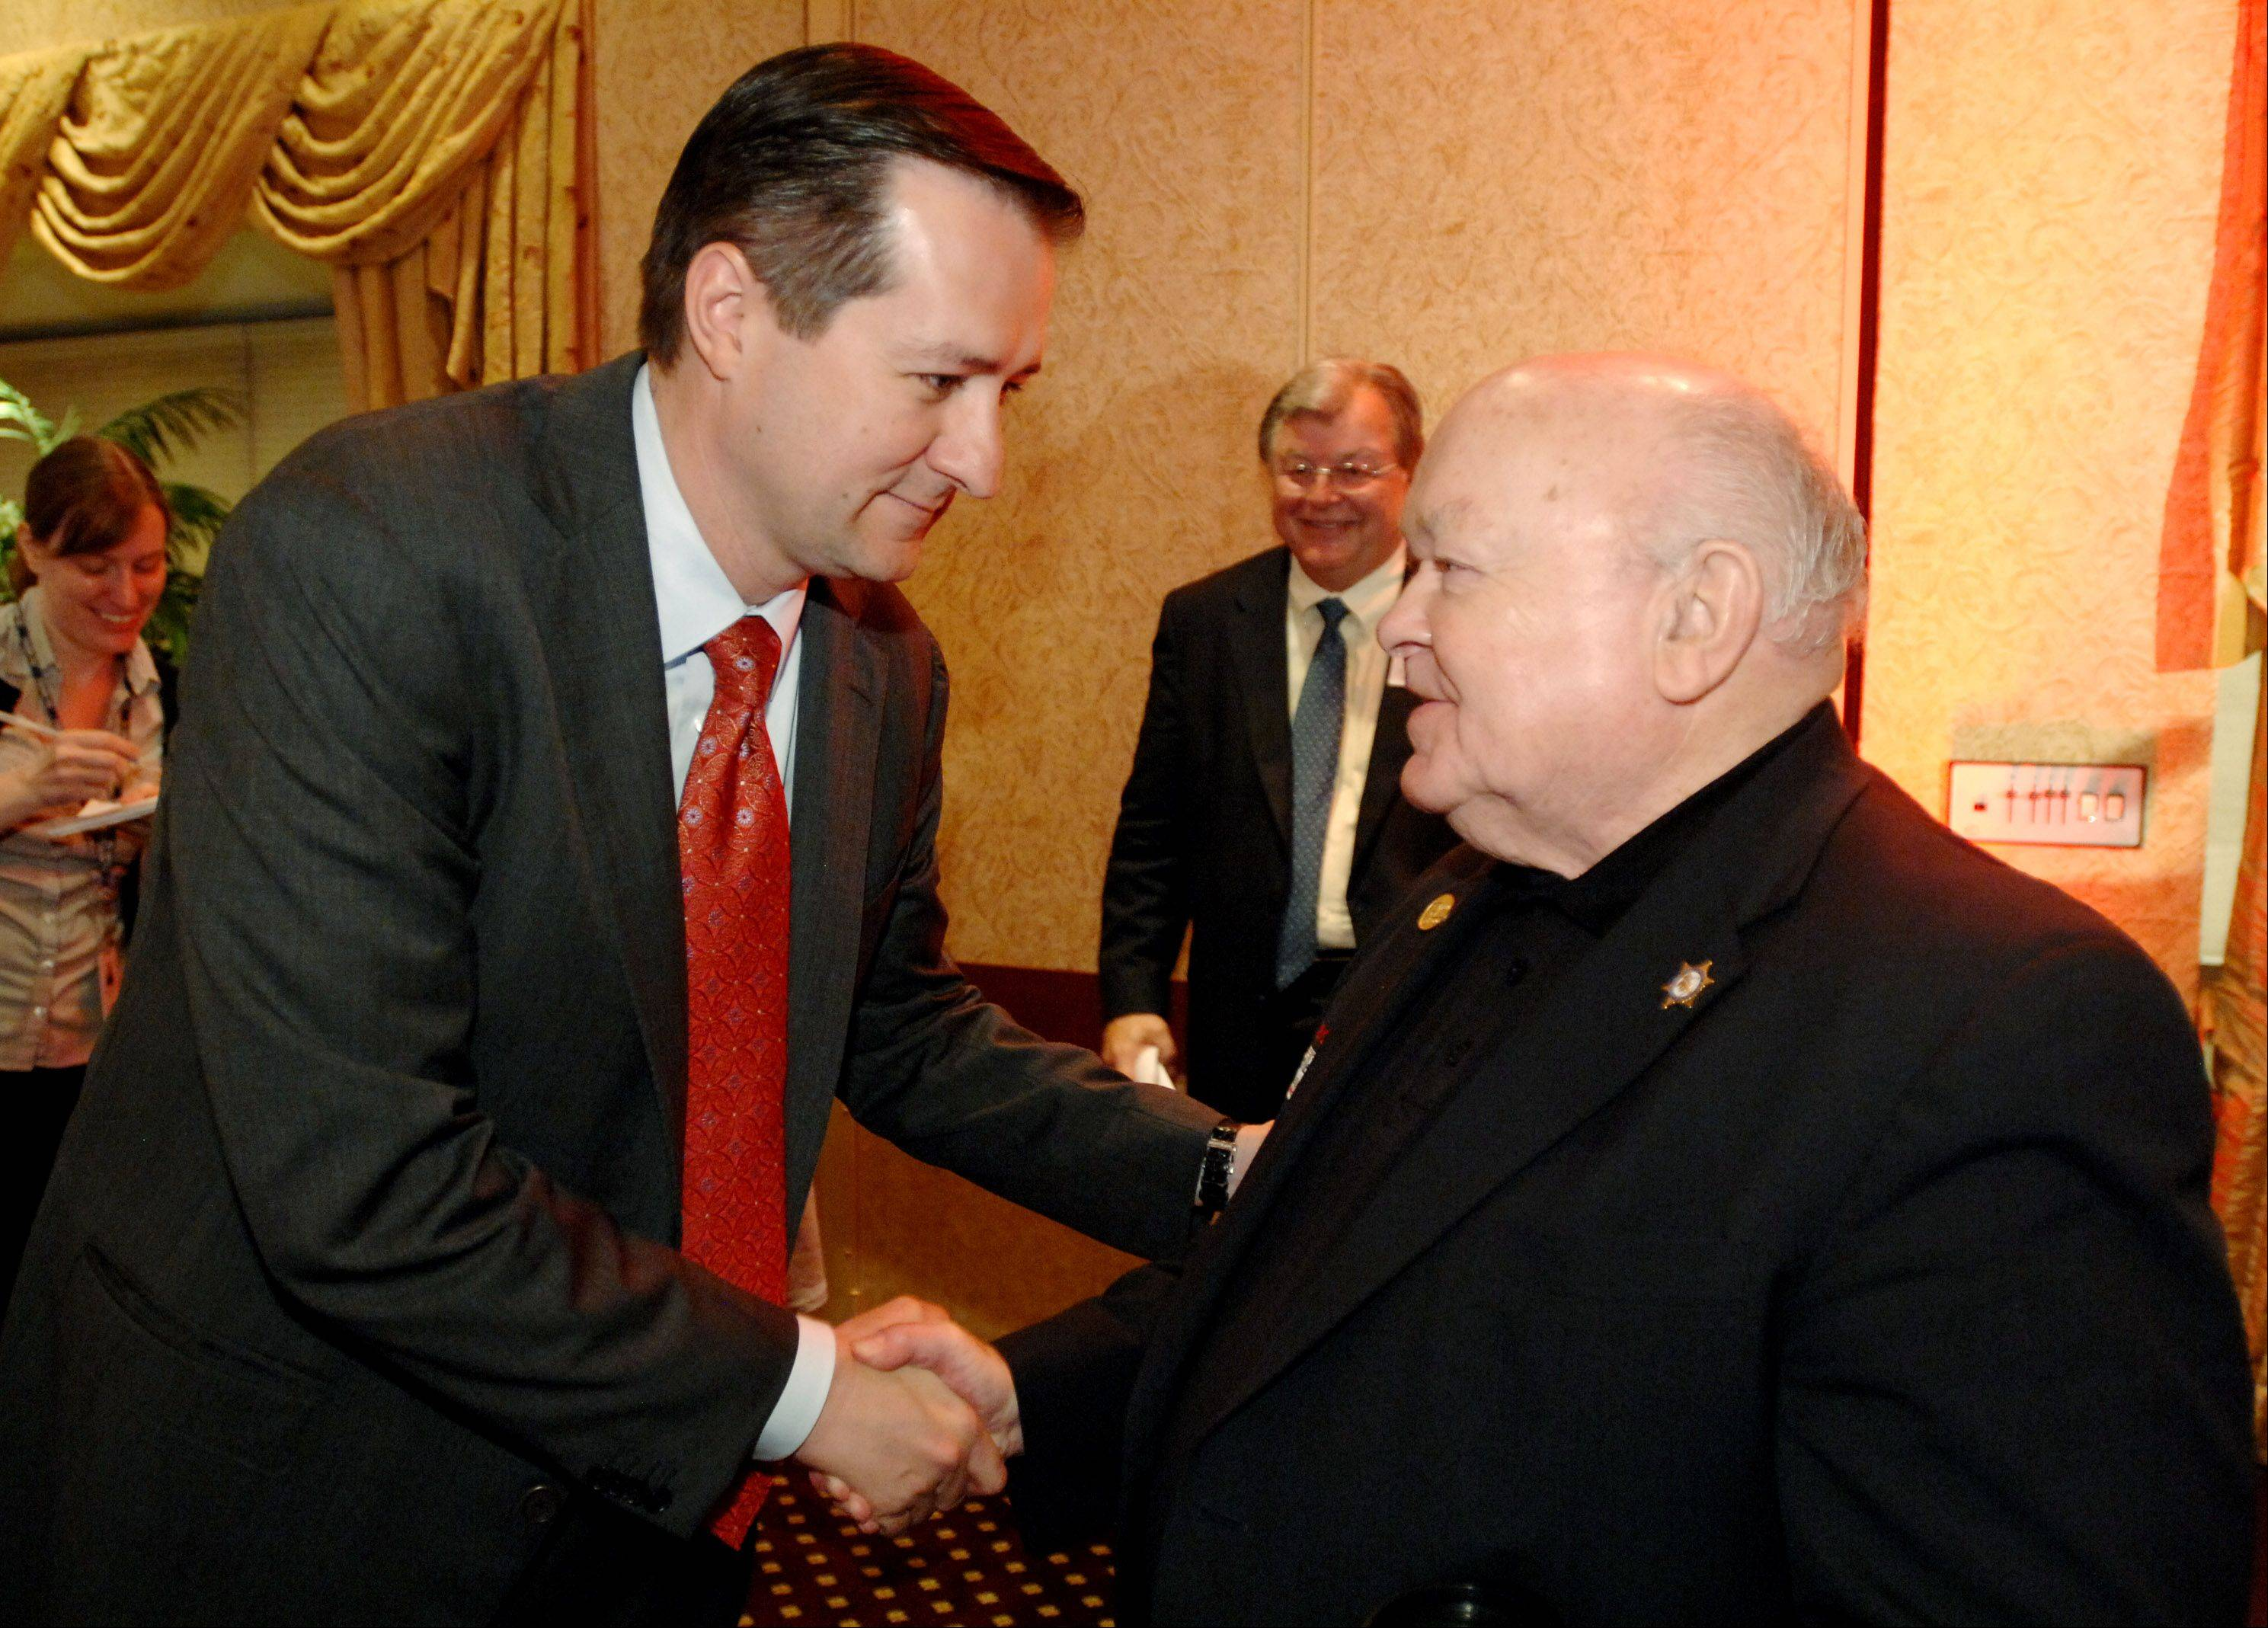 Chicago Cubs Chairman Tom Ricketts speaks with Mayor George Pradel of Naperville during a Naperville Area Chamber of Commerce lunch Monday at the Lisle Hilton.